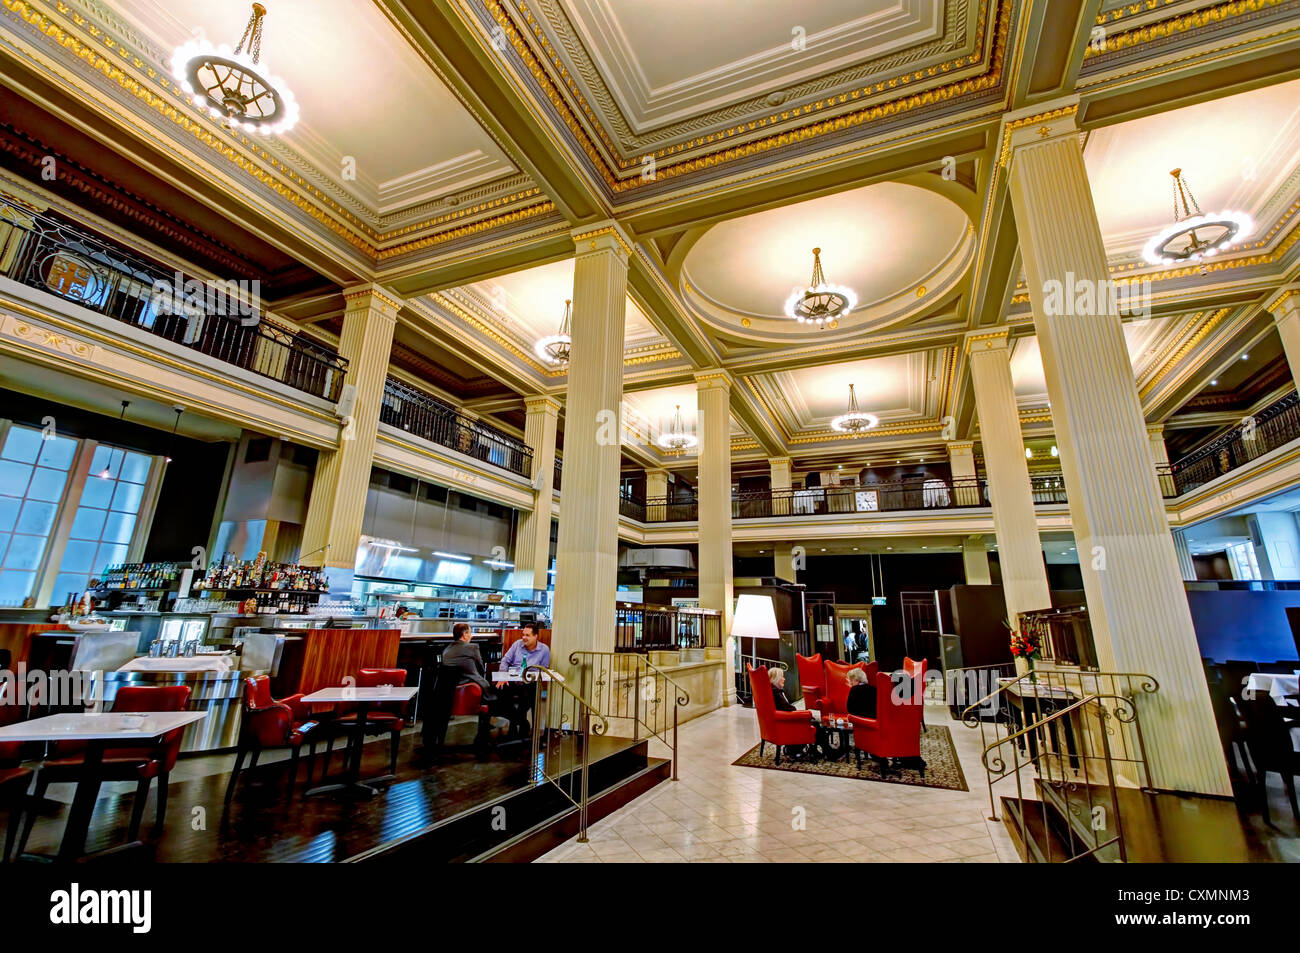 Treasury Restaurant in (Former) Bank of Australasia Building | Collins Street, Melbourne - Stock Image